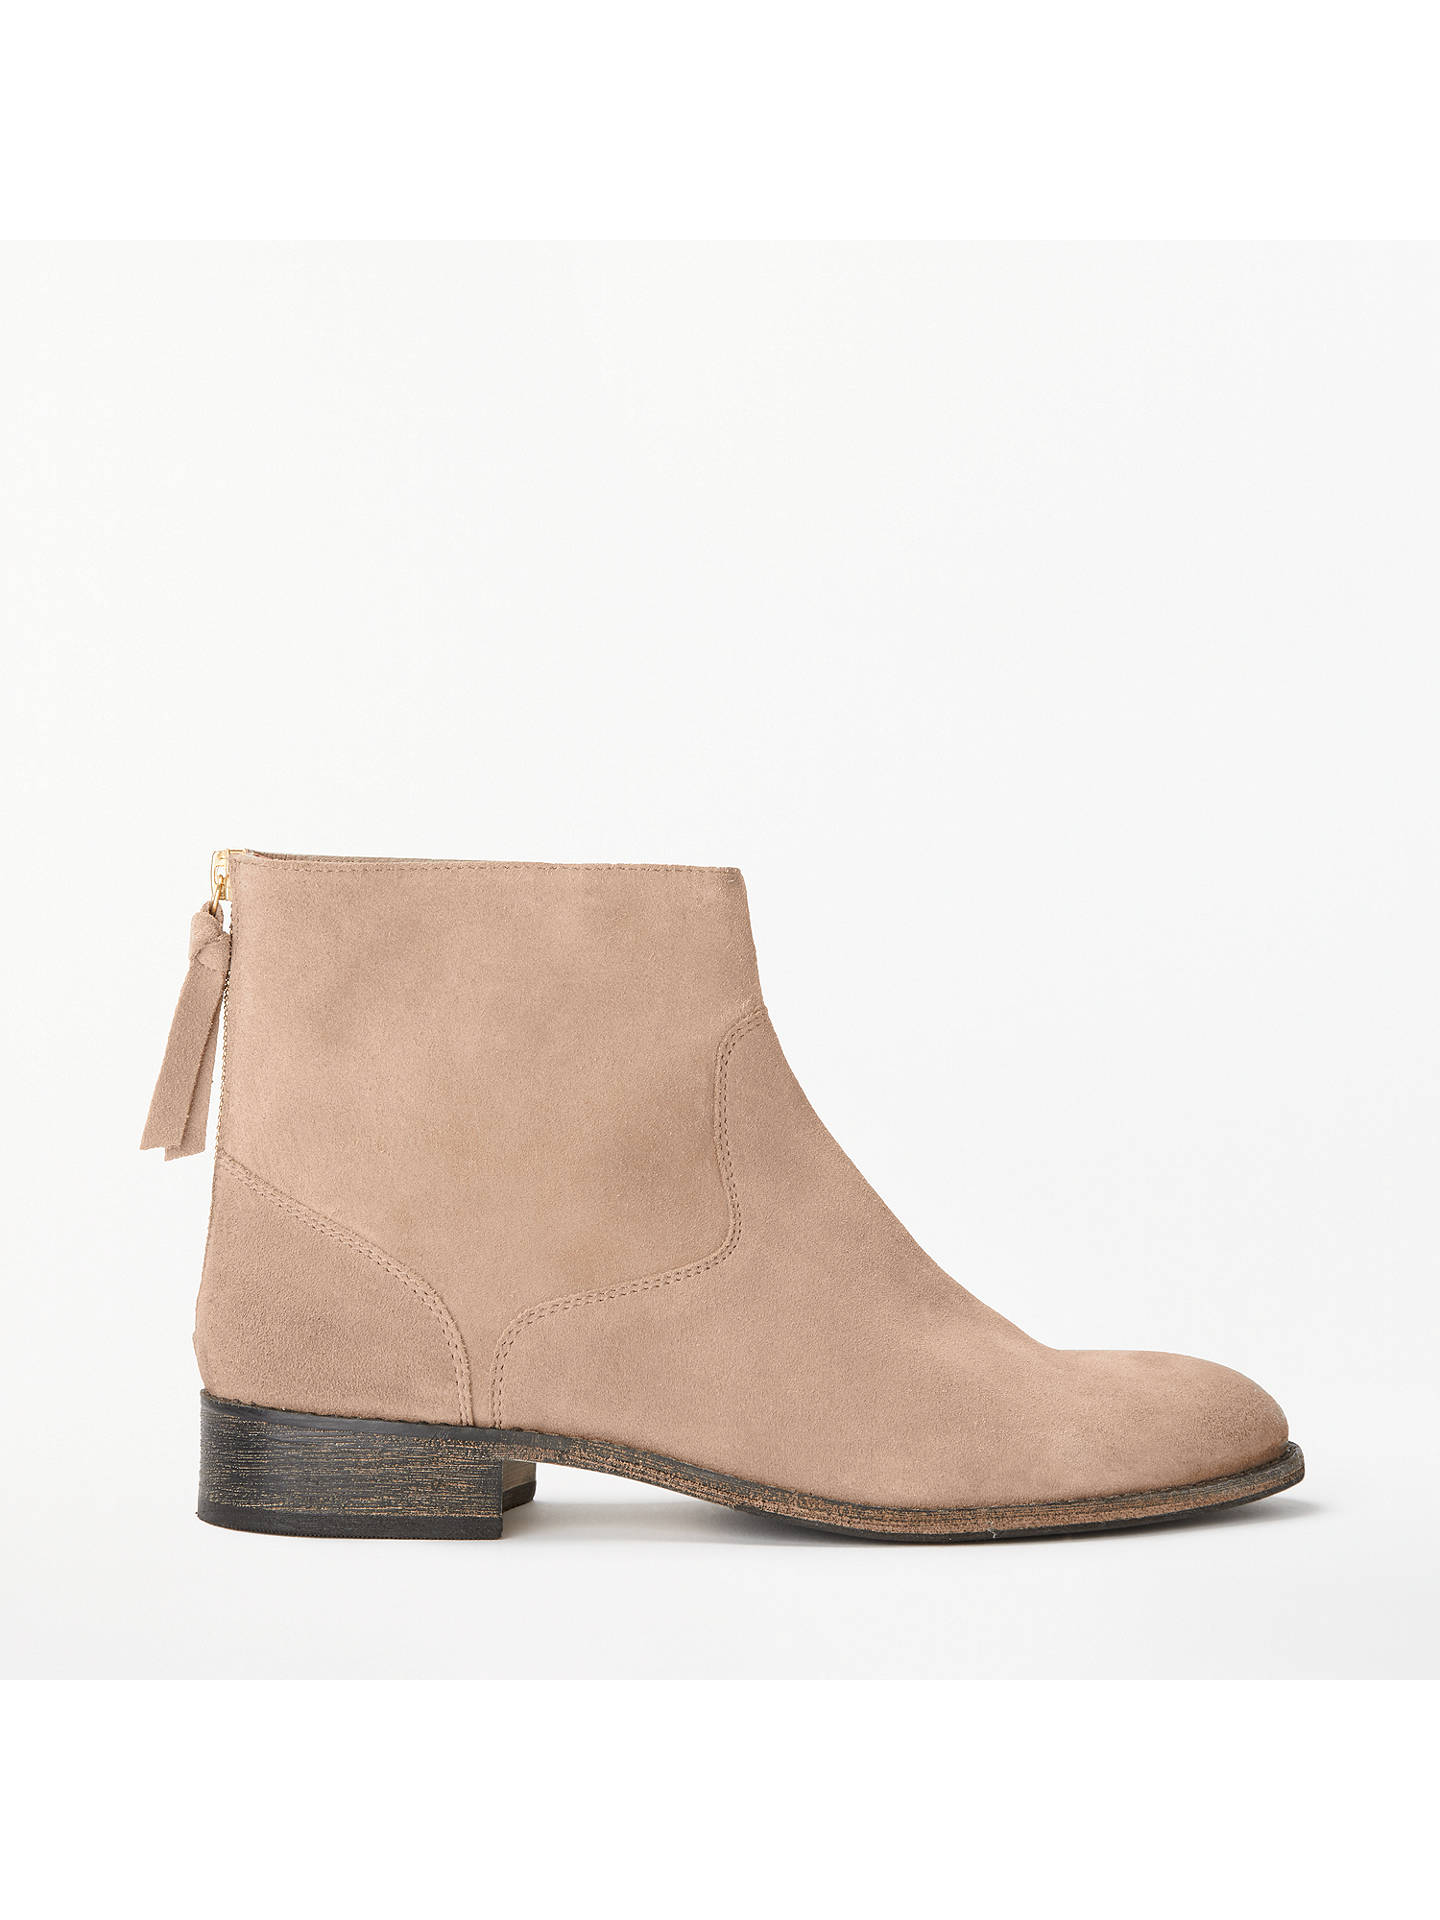 Buy Boden Kingham Ankle Boots, Soft Truffle Suede, 4 Online at johnlewis.com